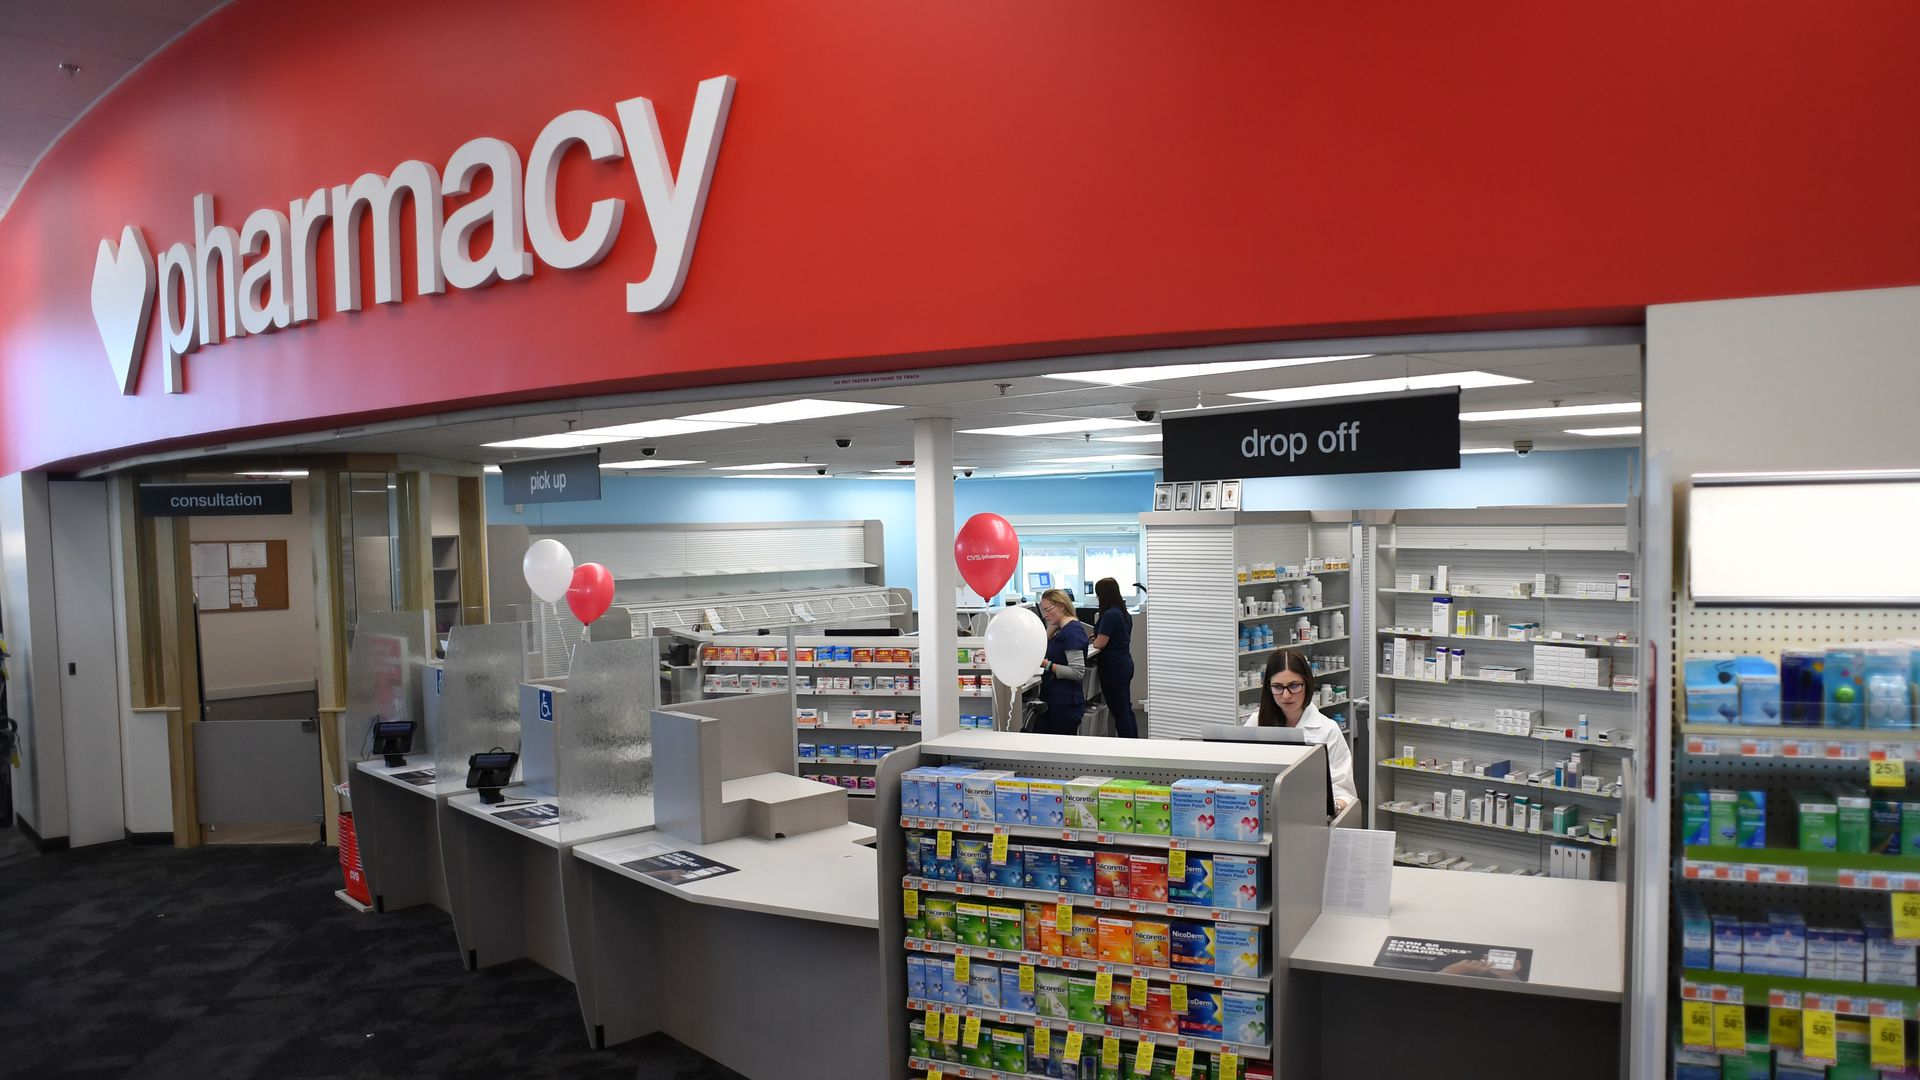 CVS vs. Silicon Valley